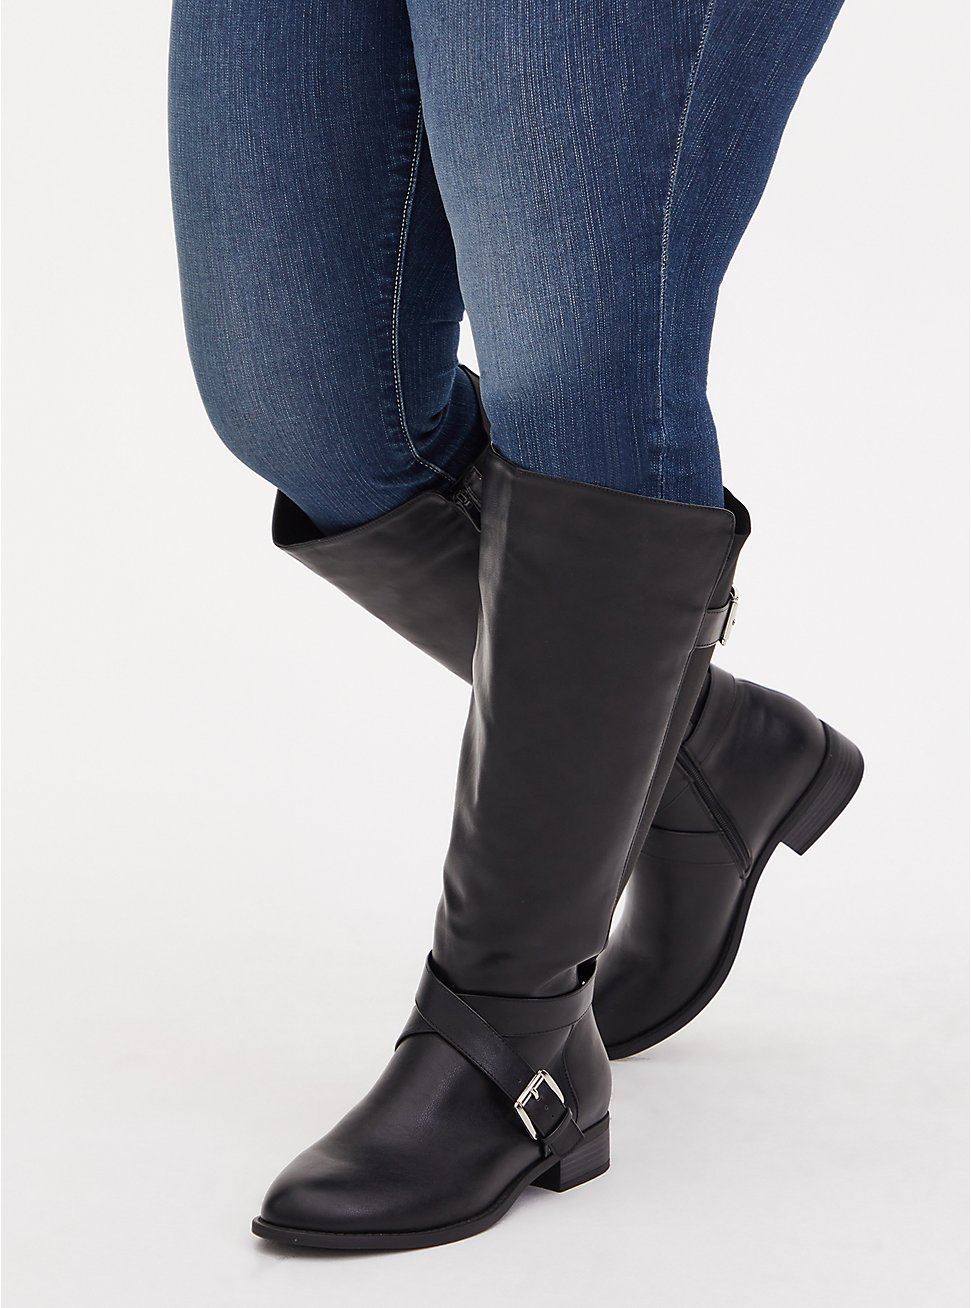 Brooke - Black Faux Leather Buckle Knee-High Boot (WW & Wide to Extra Wide Calf), BLACK, hi-res